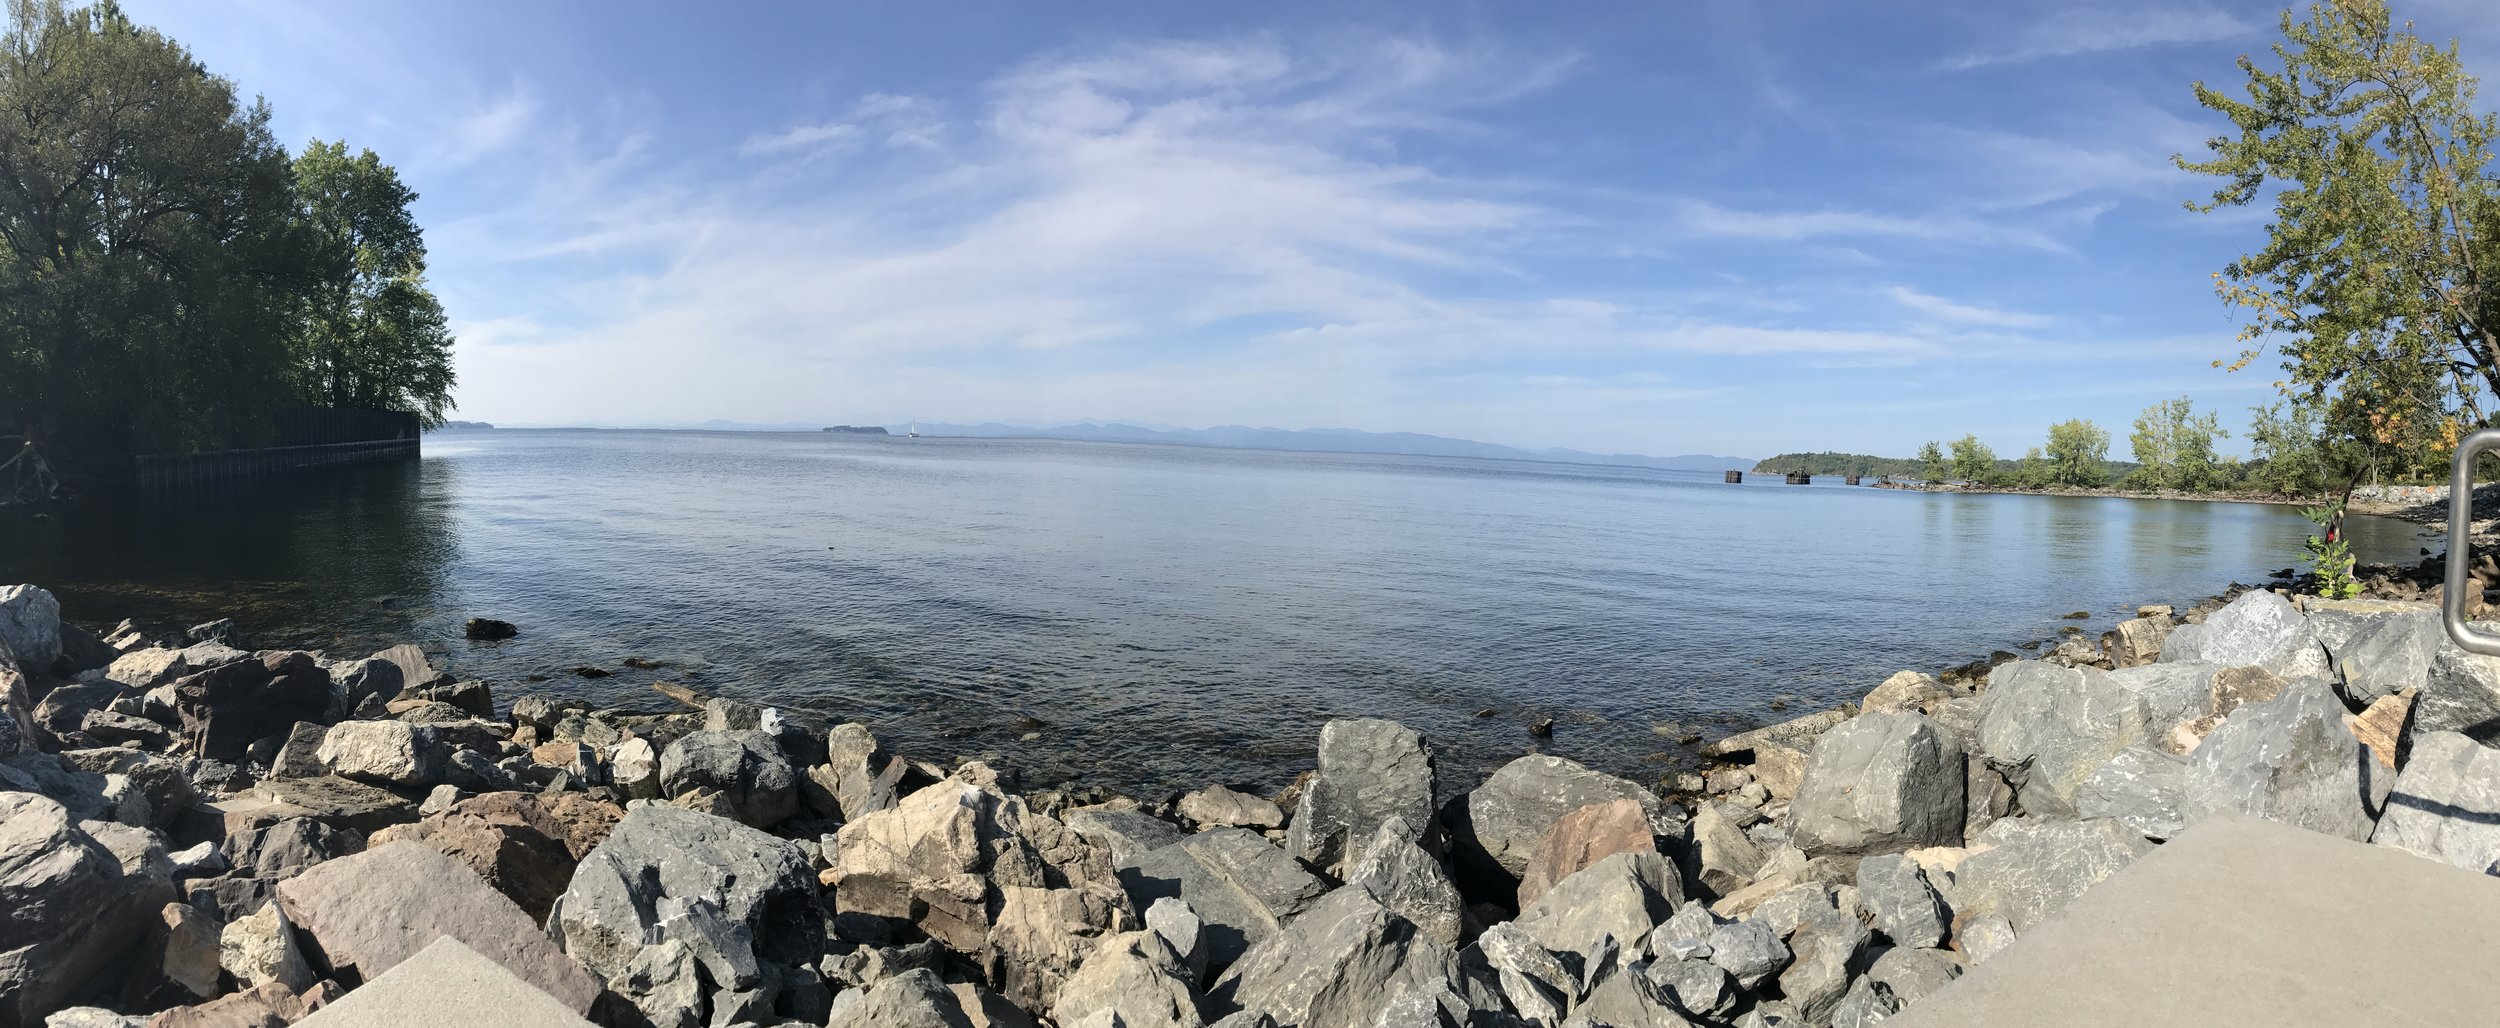 Lake Champlain from the Burlington bike path. A place I enjoy walking to and meditating at.